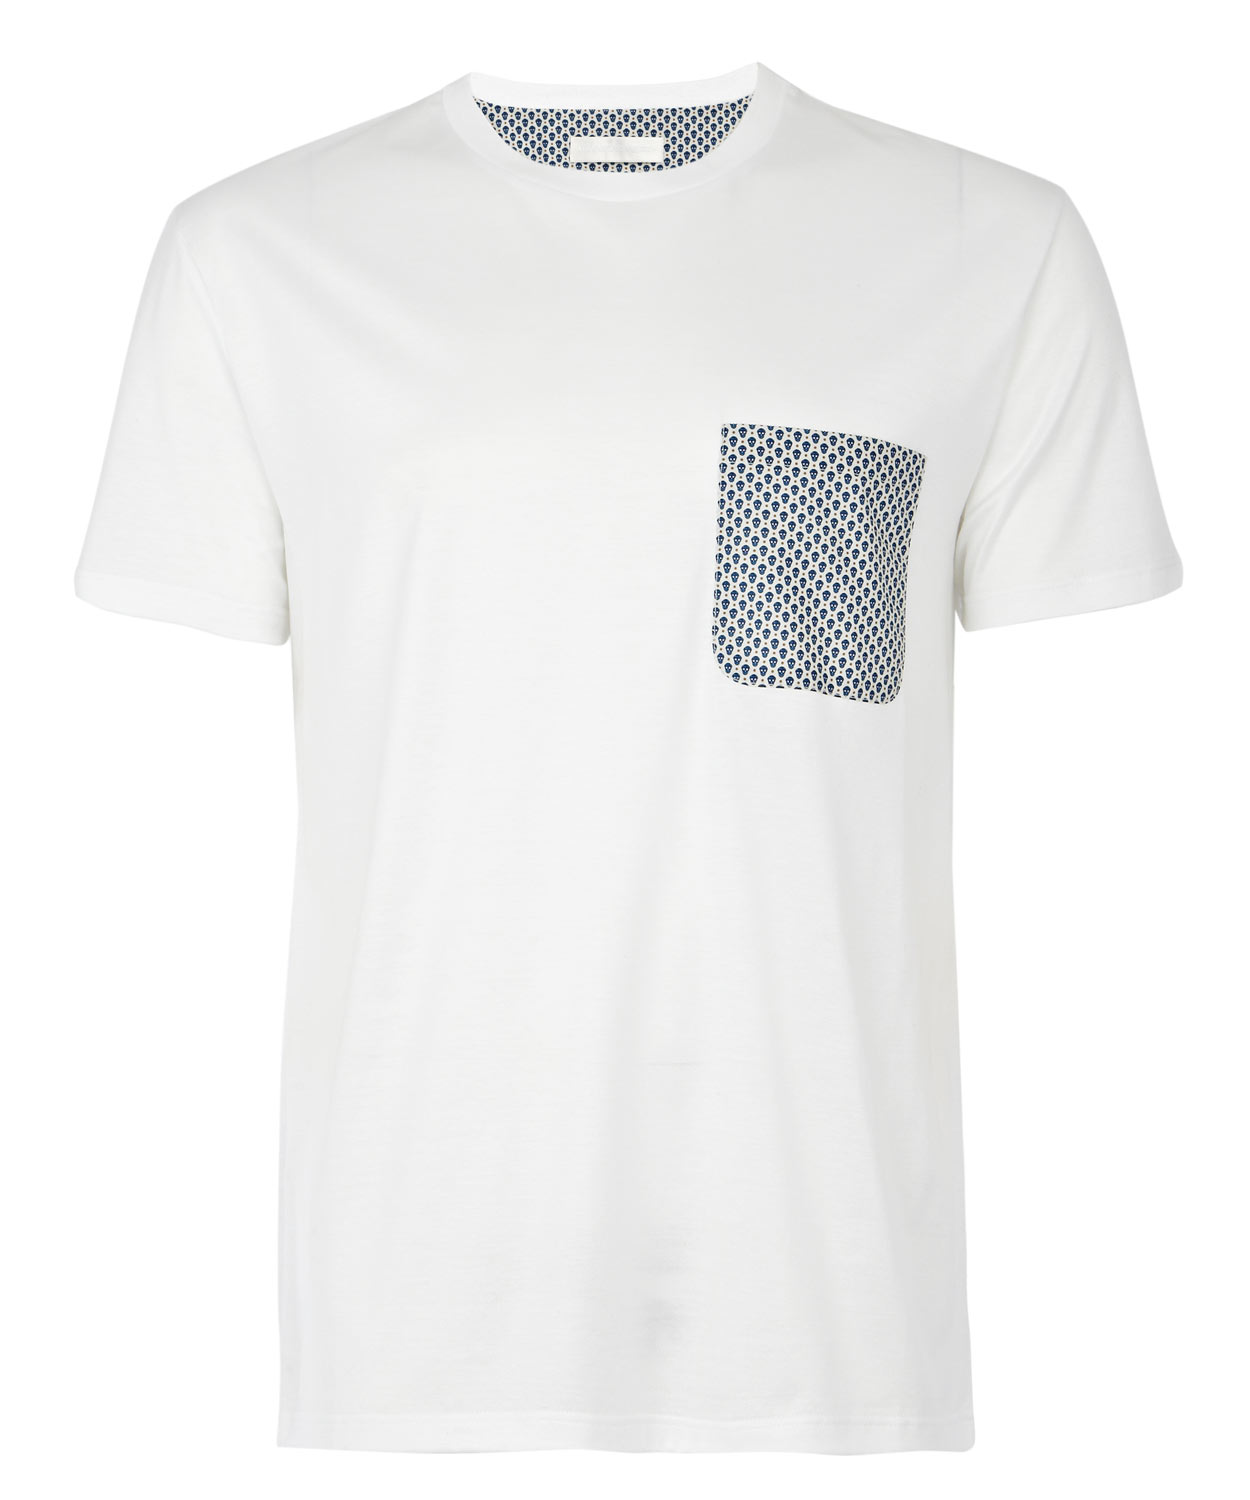 Alexander mcqueen skull print pocket t shirt in white for for Pocket t shirt printing